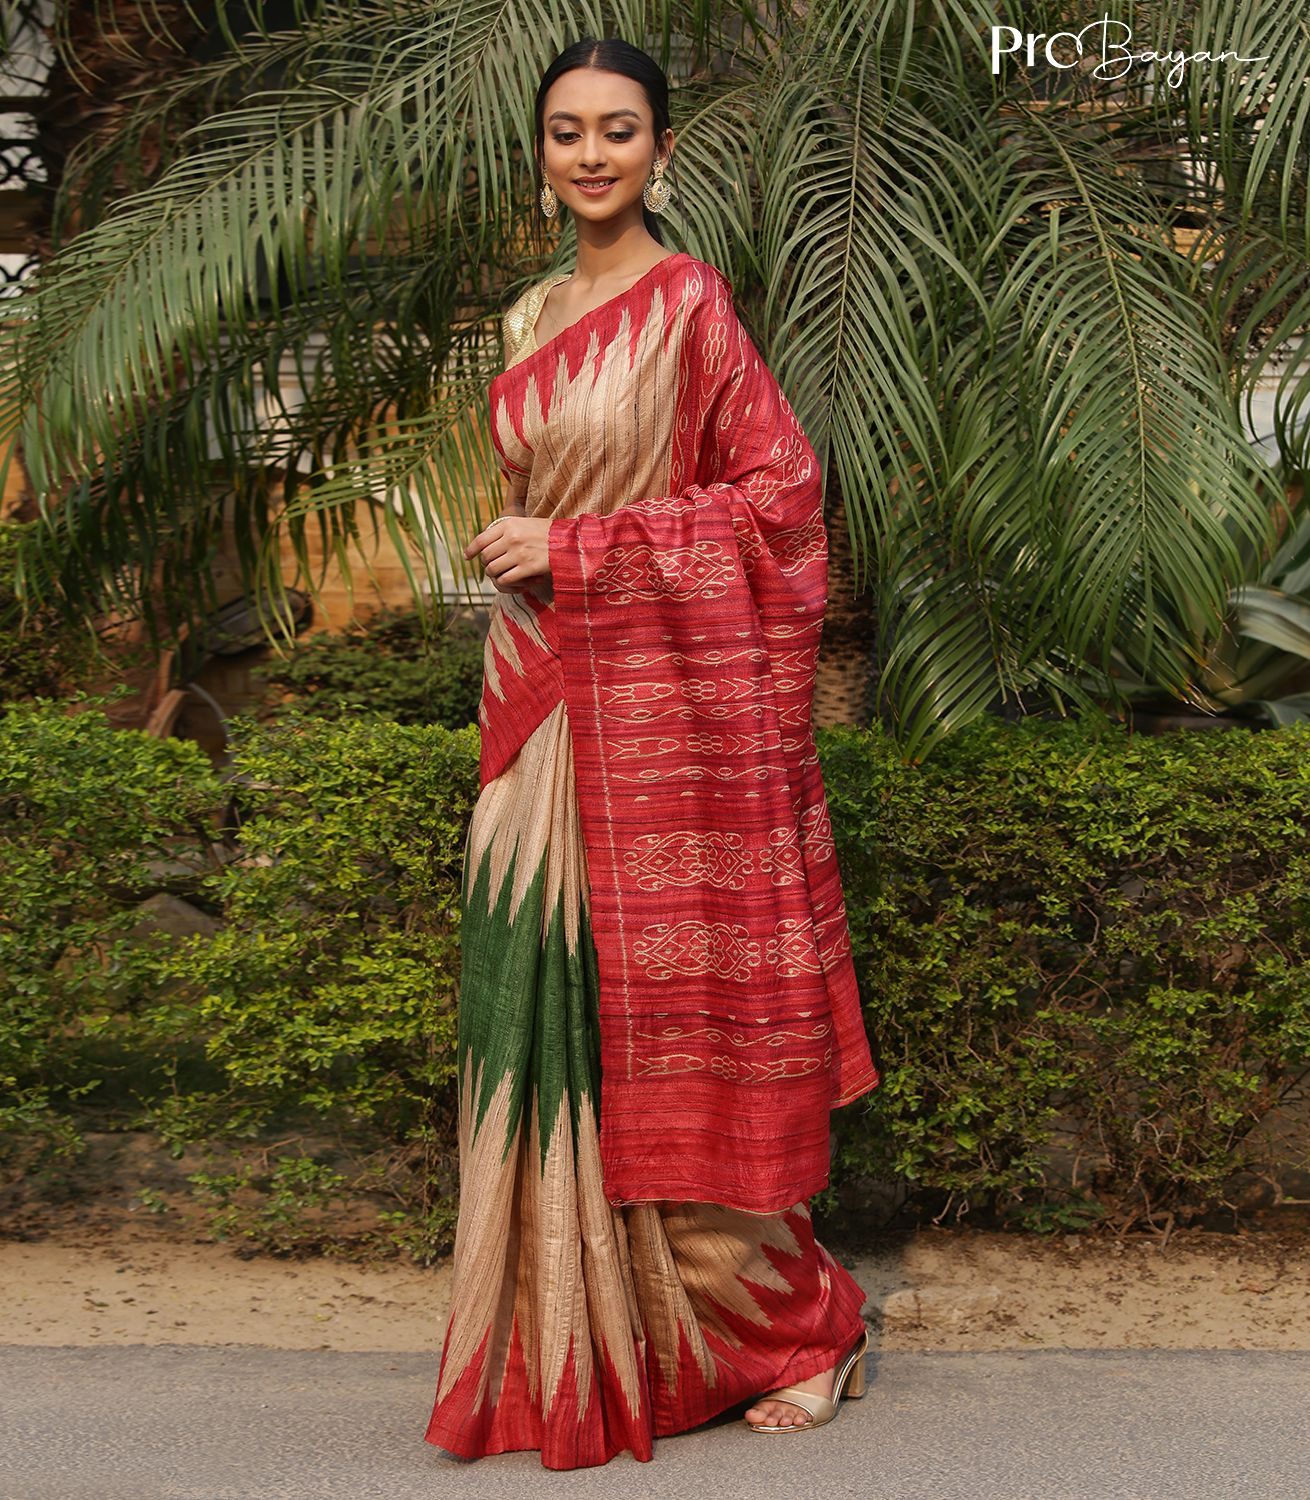 Tussar Ghicha Silk Ecru White with Red and Green Temple Border Handwoven Saree